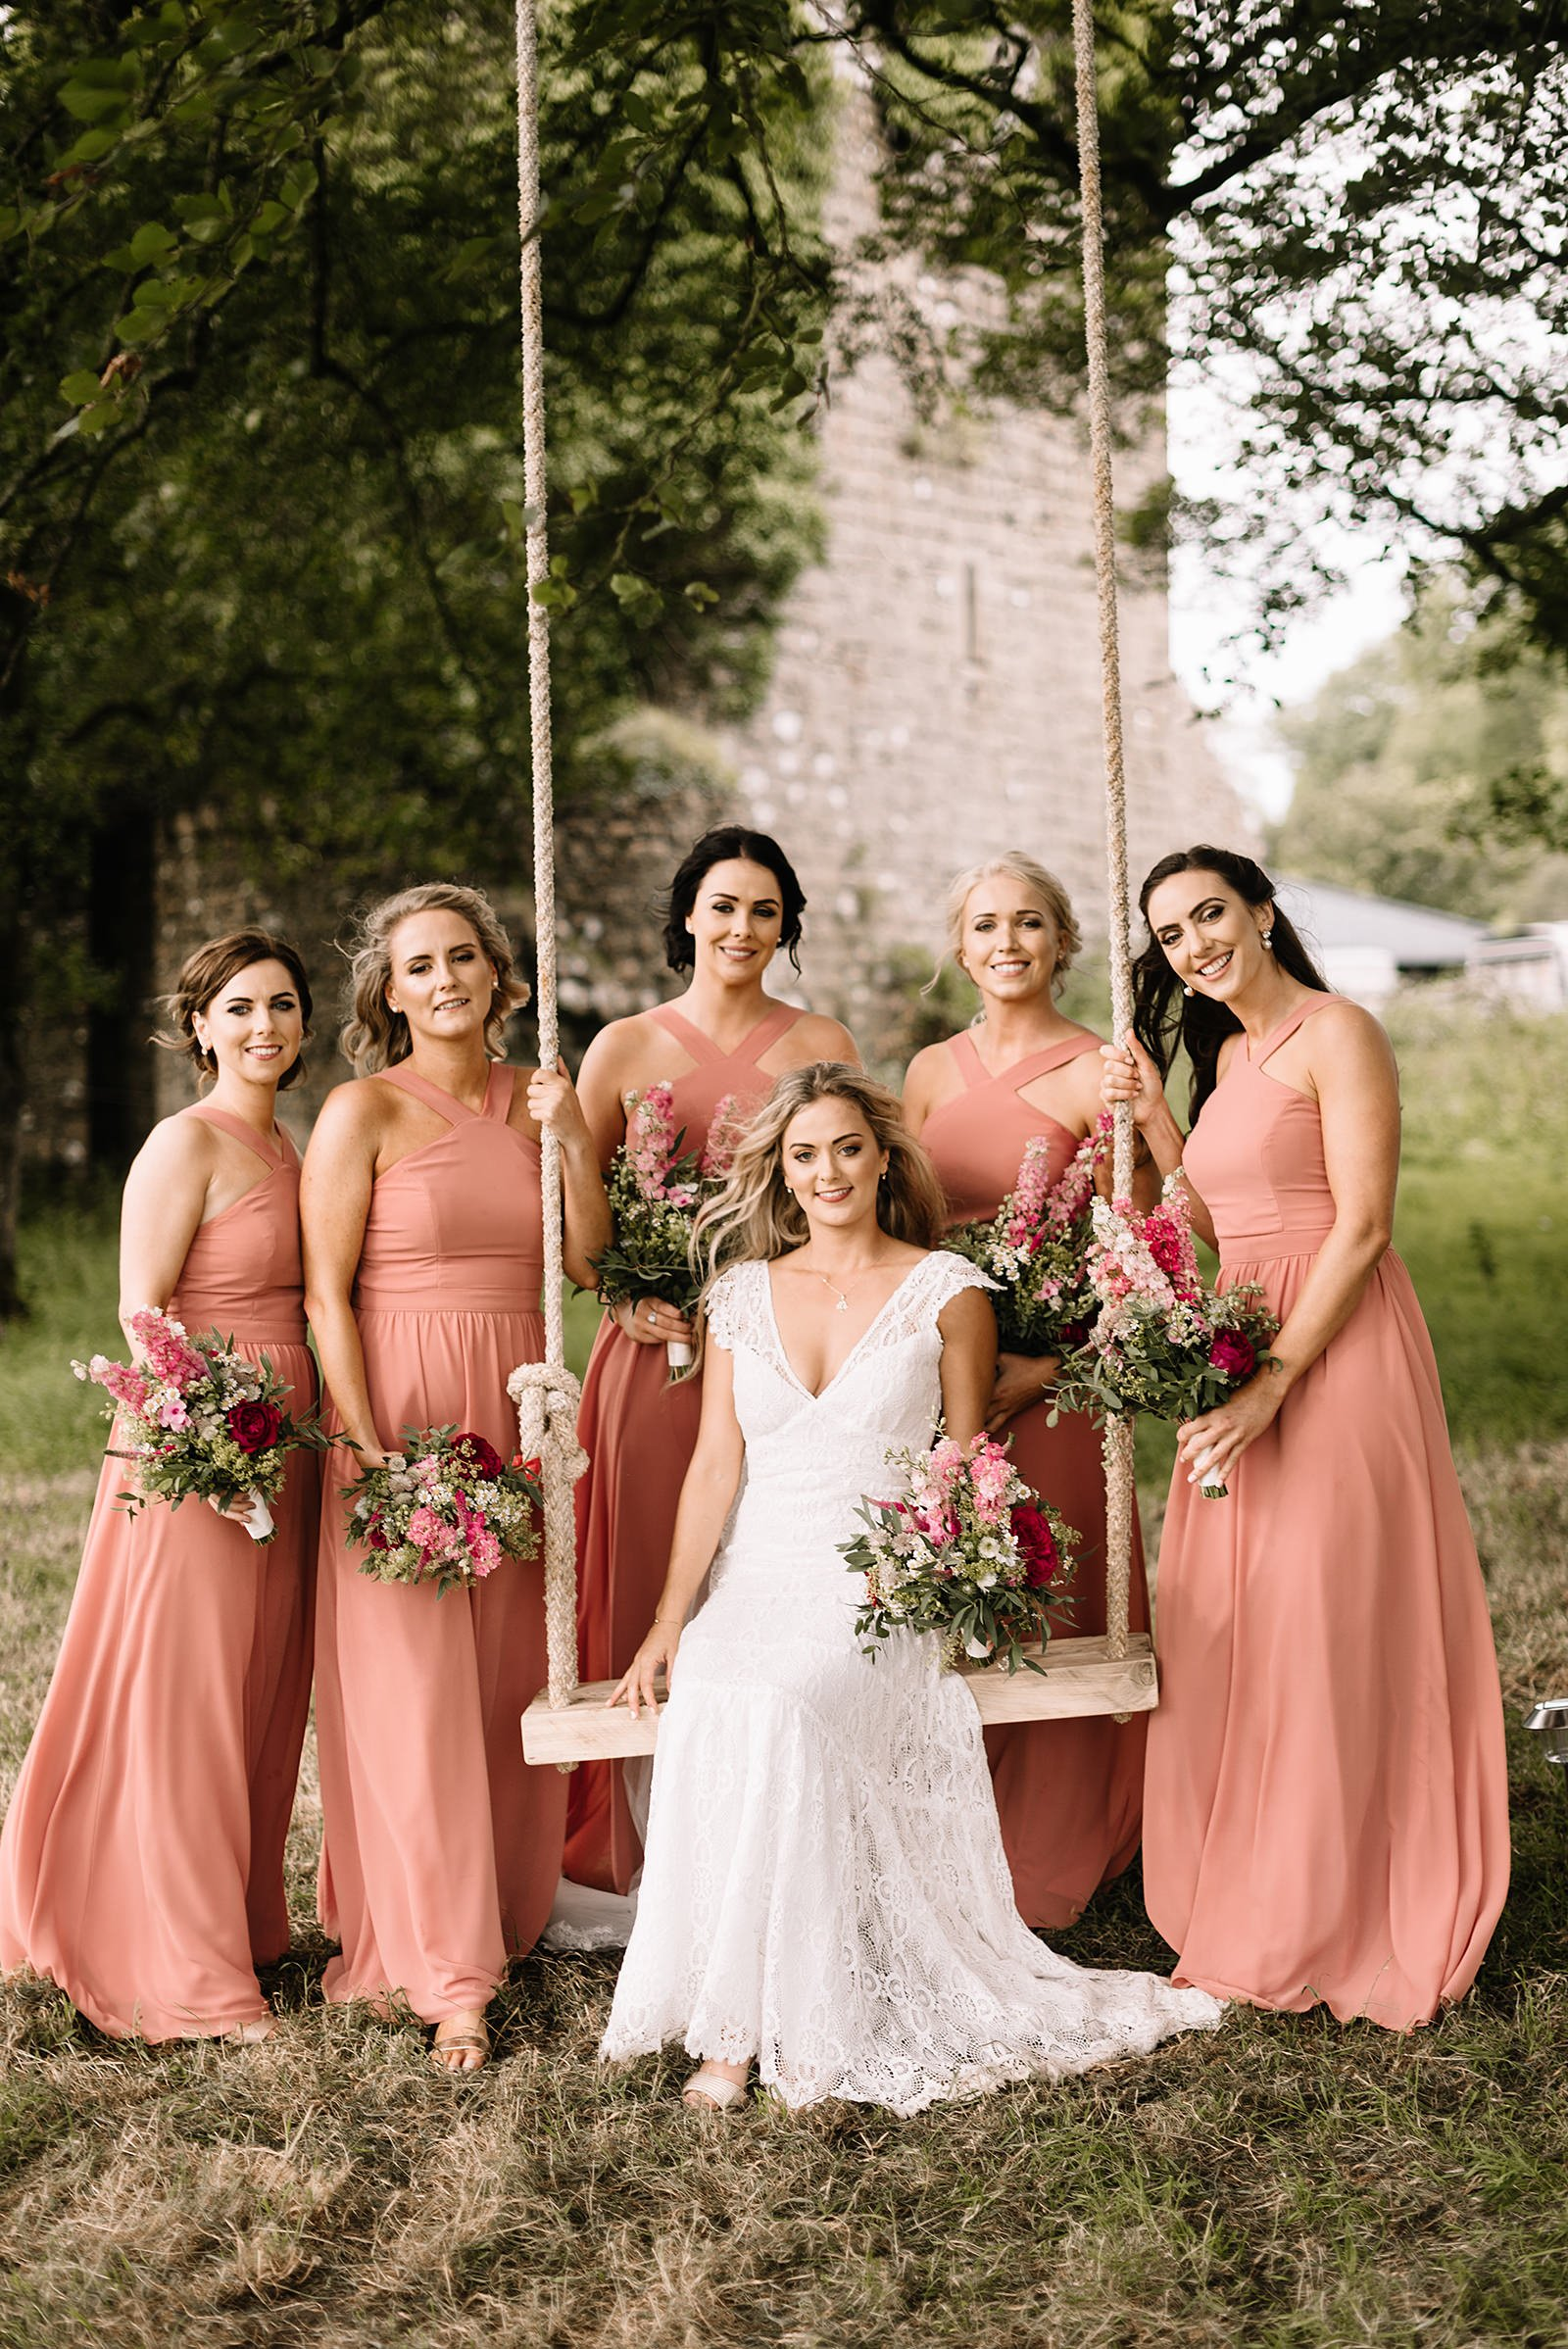 How To Pick Your Bridesmaids Dresses